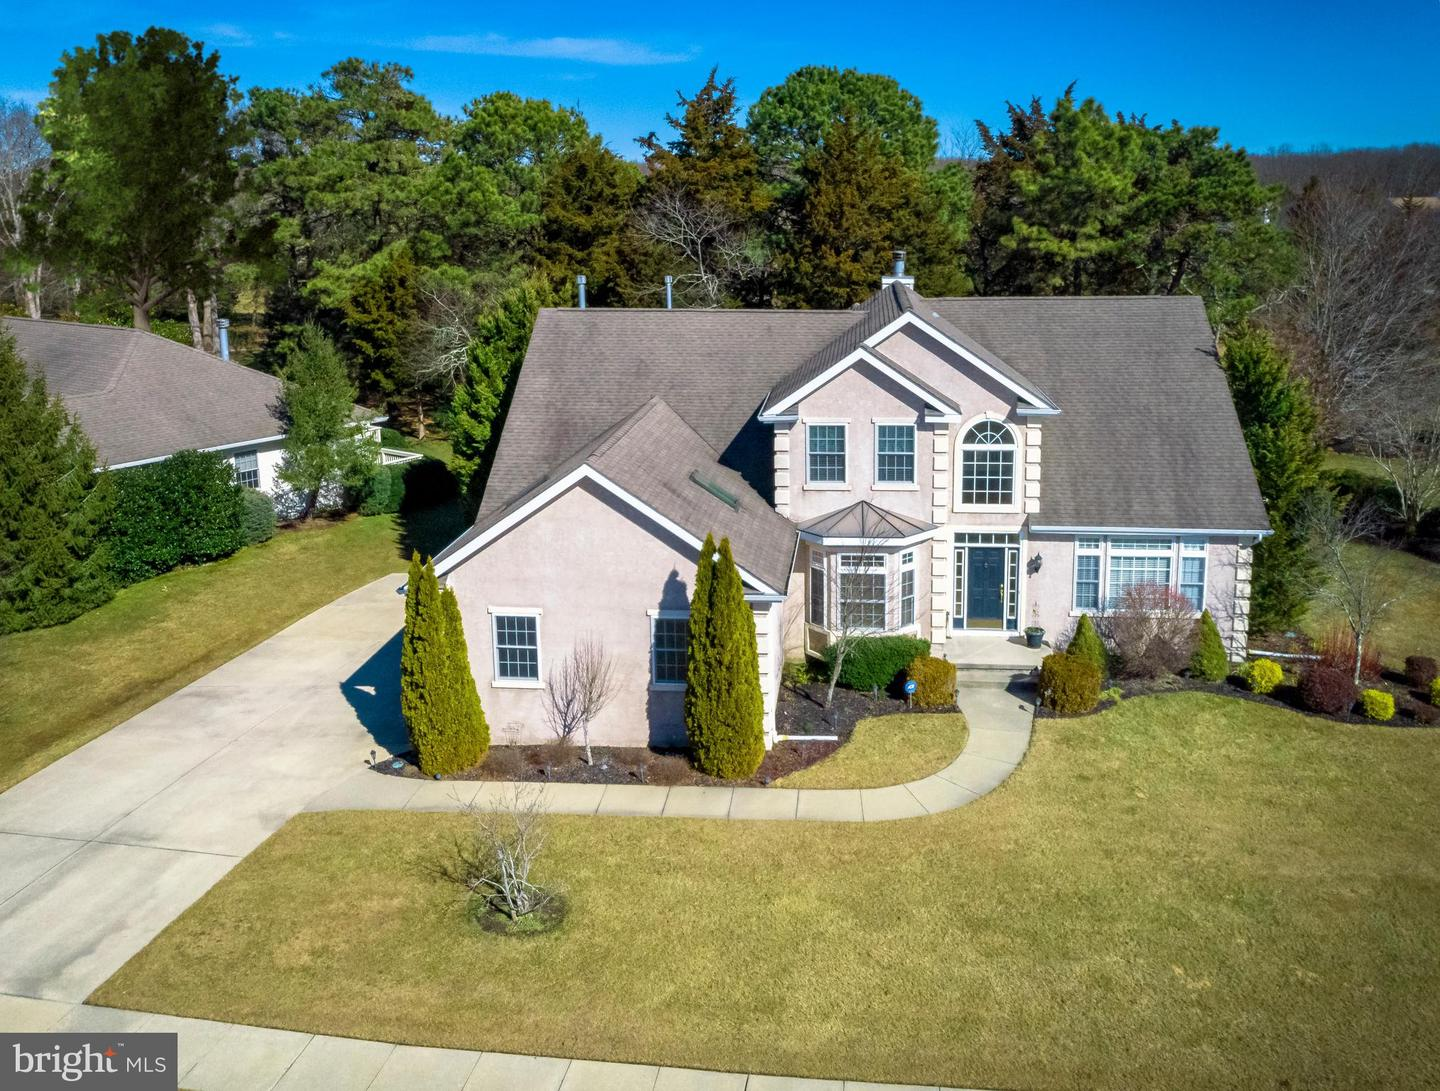 Maison unifamiliale pour l Vente à 8 PEBBLE BEACH Drive Egg Harbor Township, New Jersey 08234 États-Unis